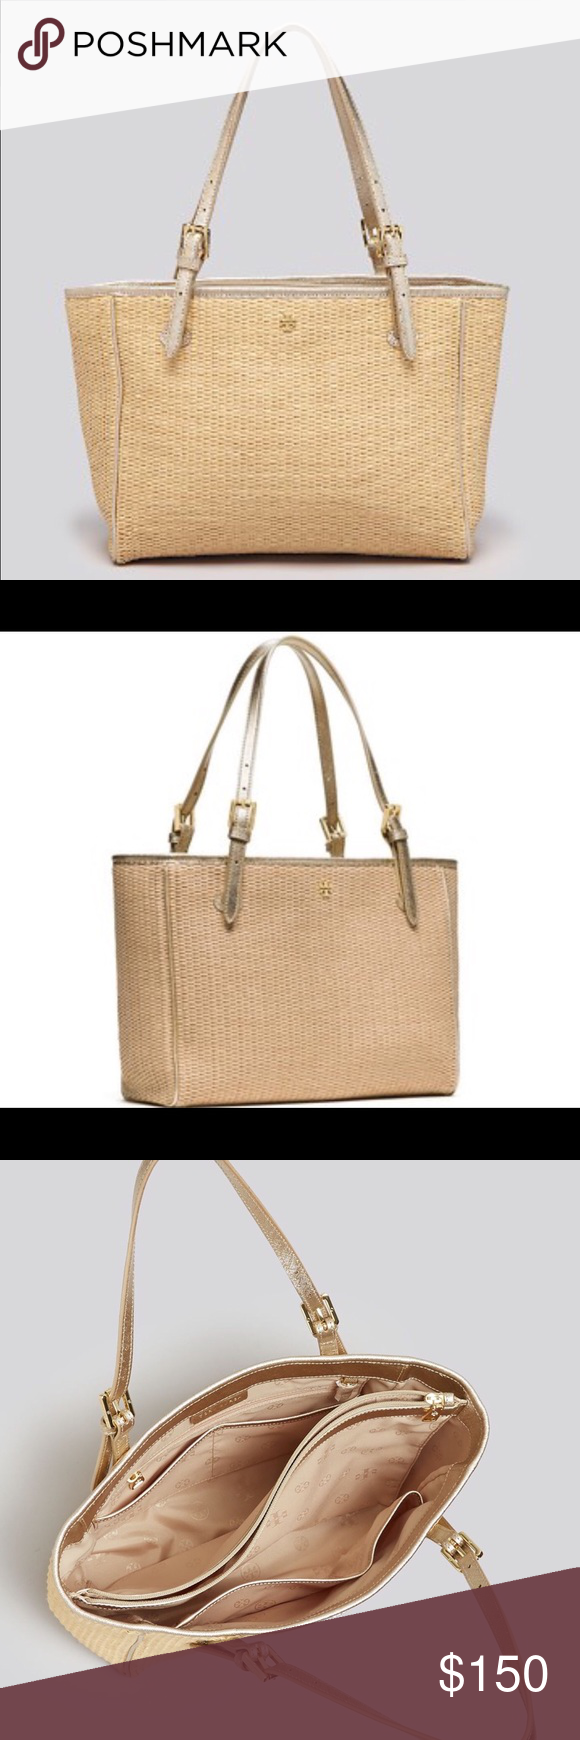 f8b6adb71f30 Tory Burch York straw small buckle tote Straw colored woven texture  combined with silver leather straps and buckles. Good used condition.